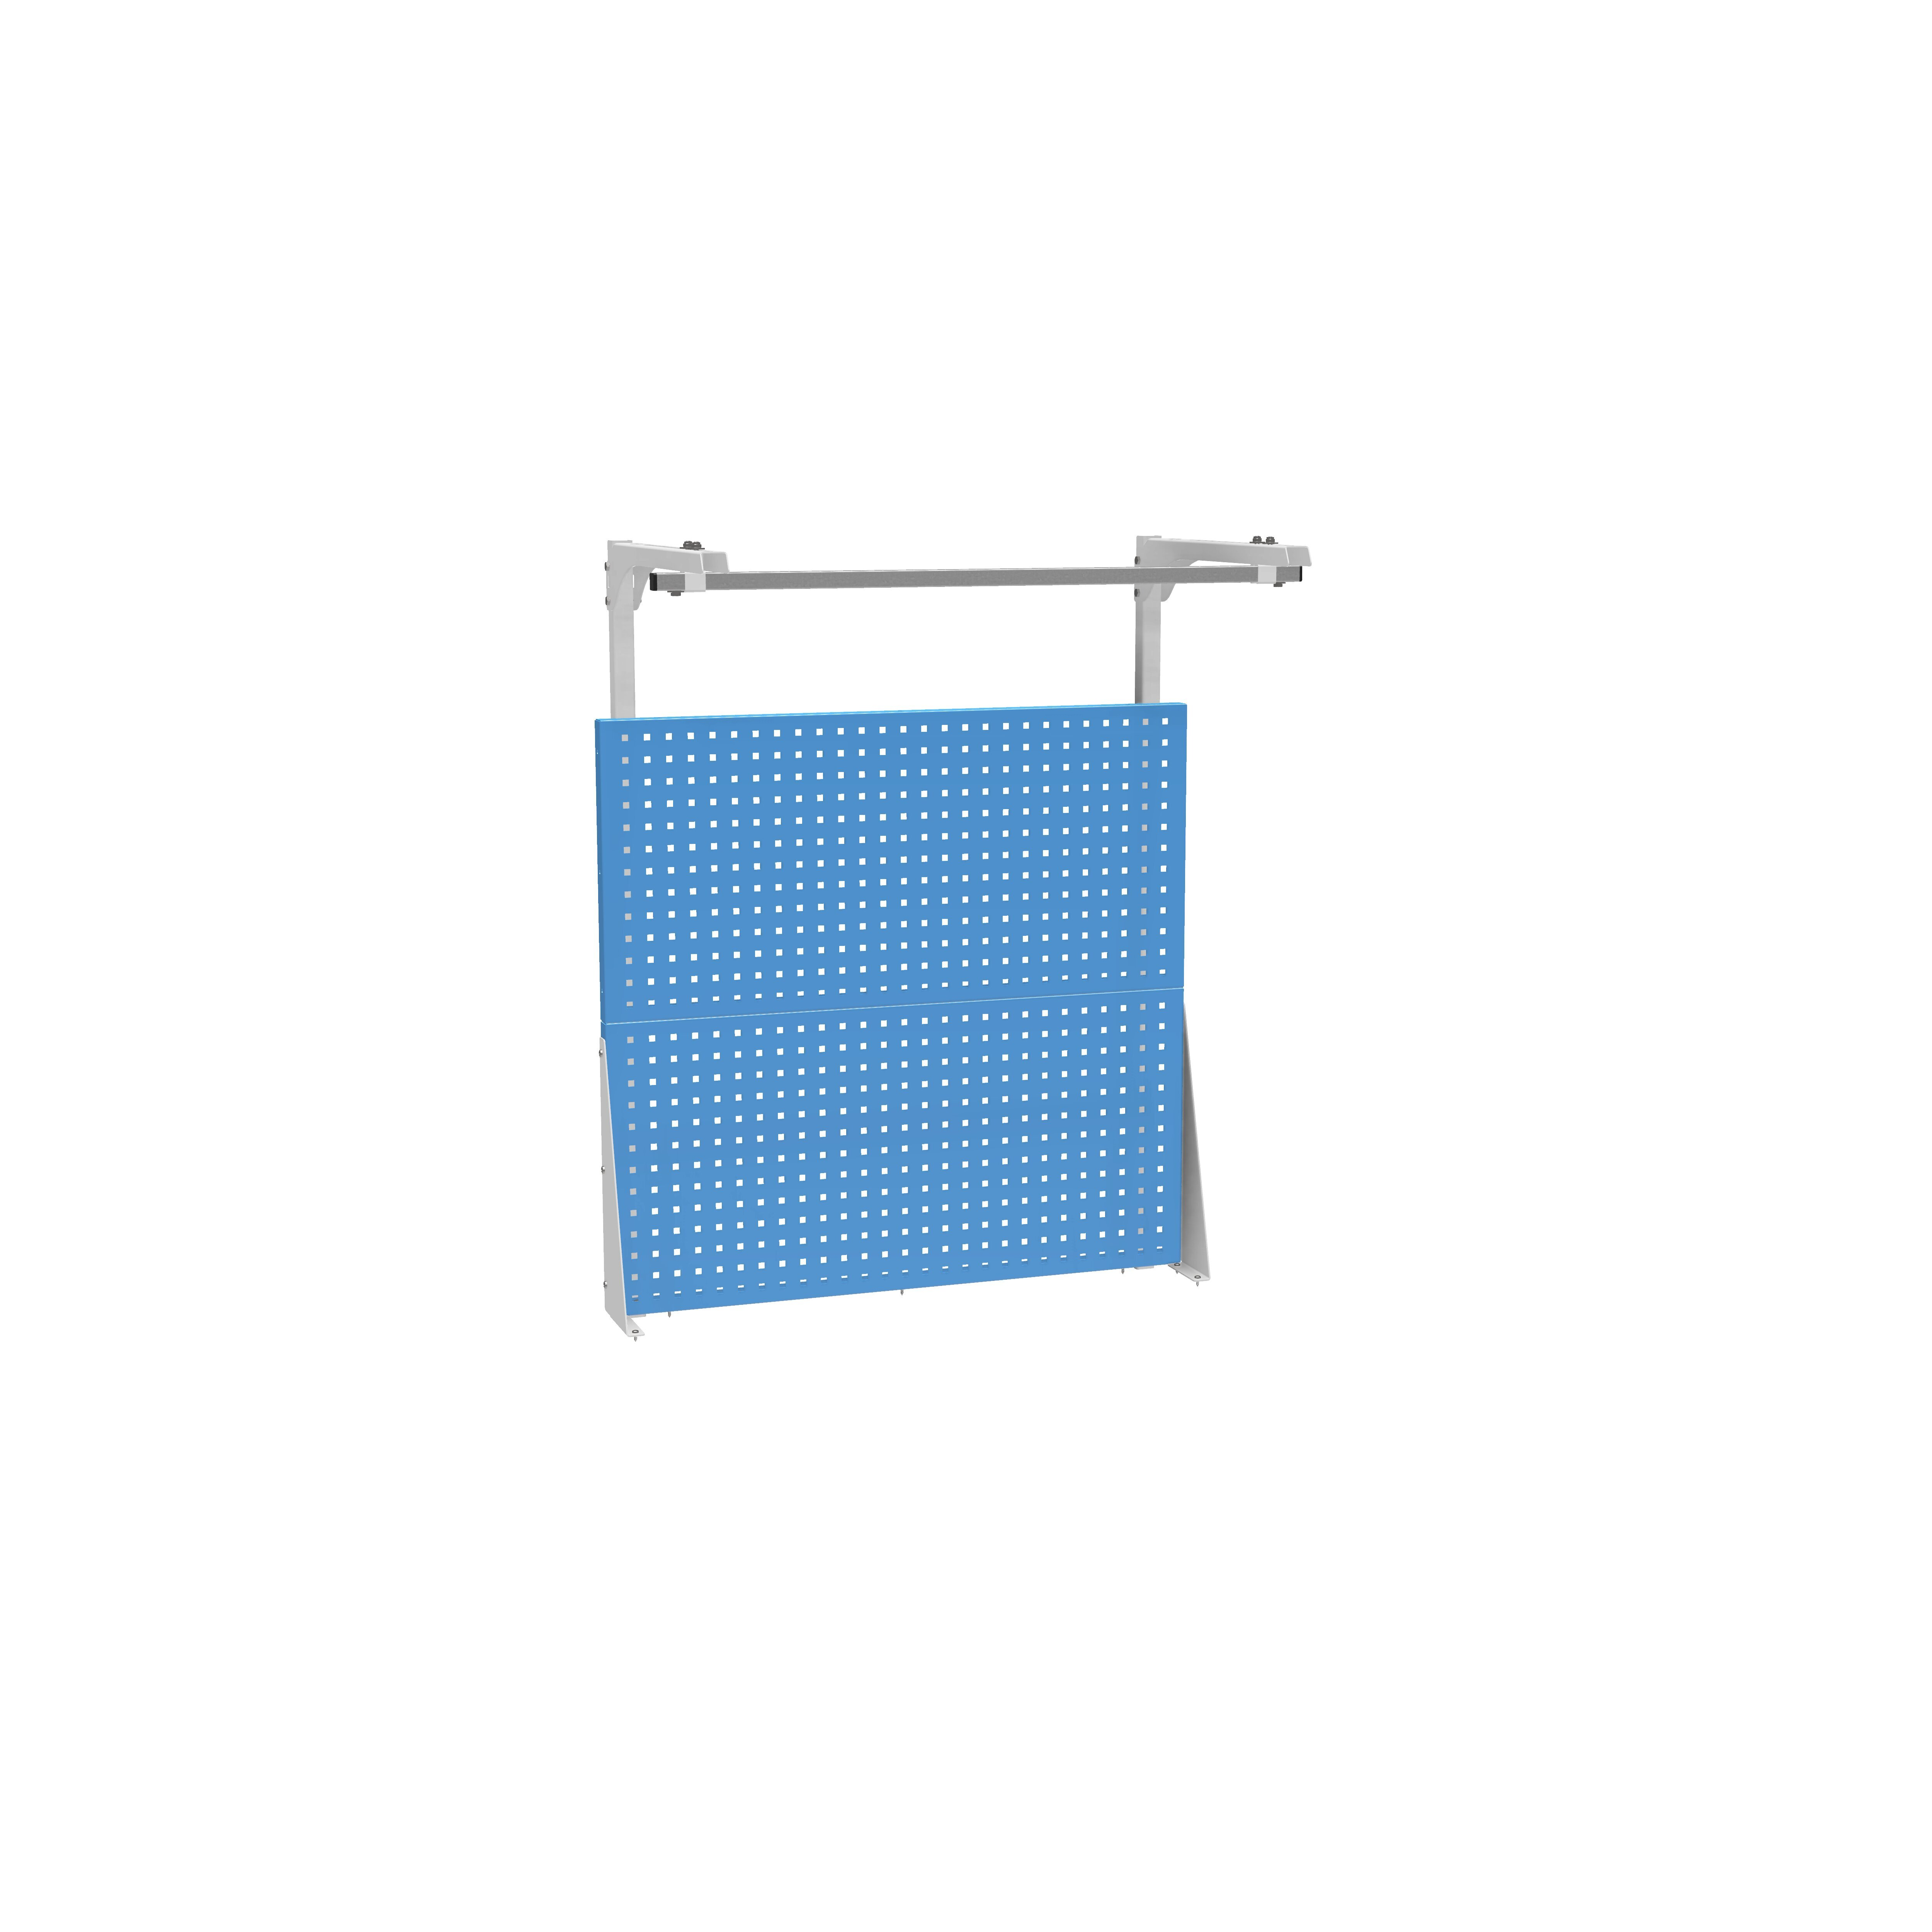 DiKom Perforated Panel VL-100-E3